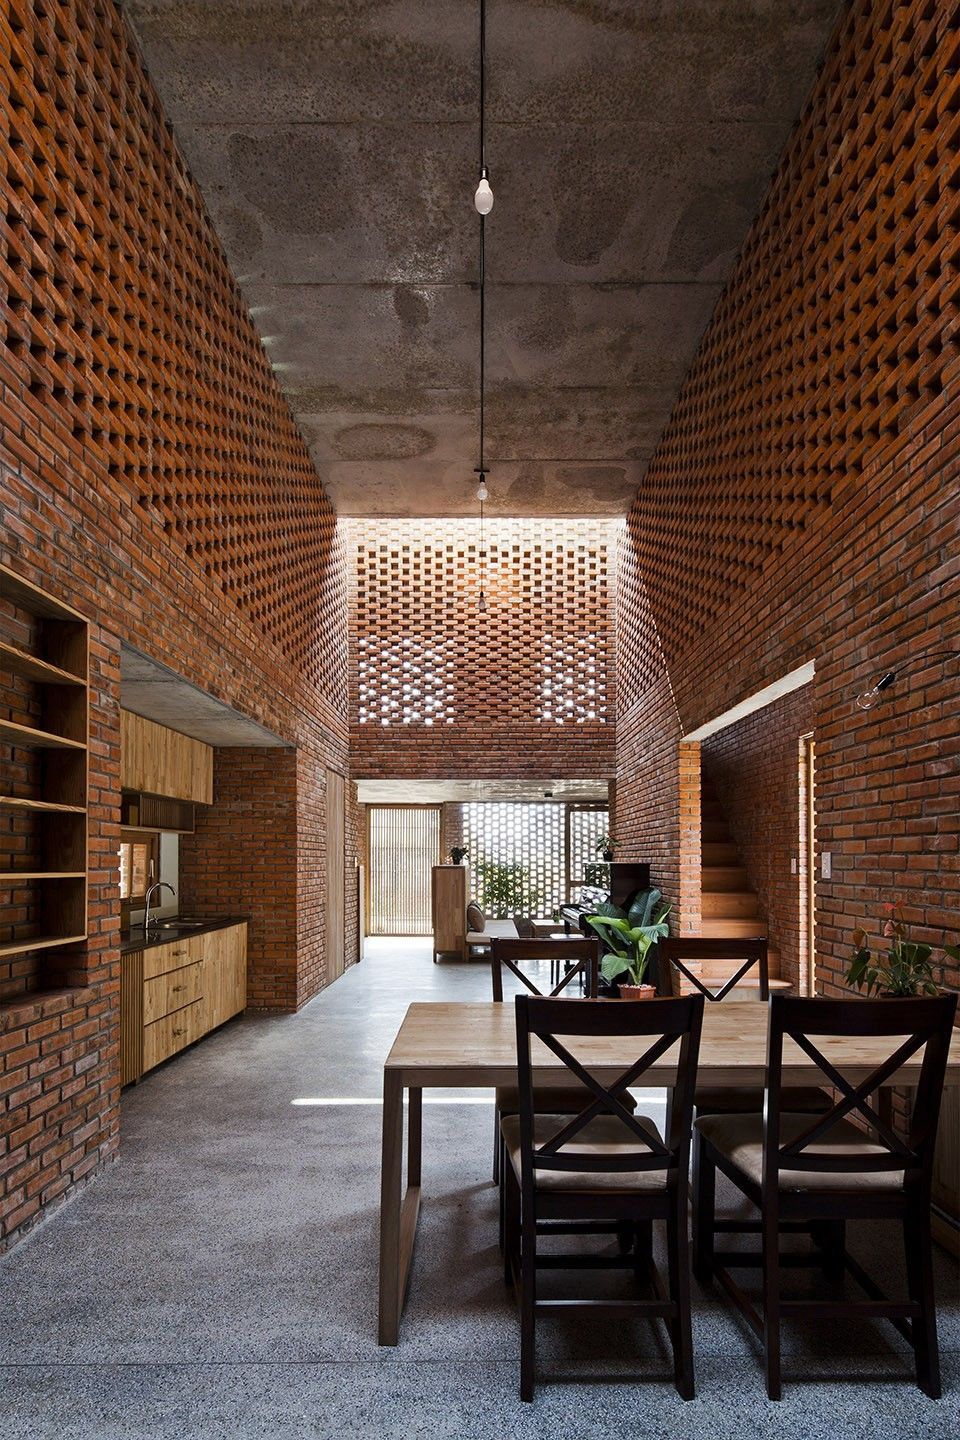 012-TERMITARY HOUSE by TROPICAL SPACE